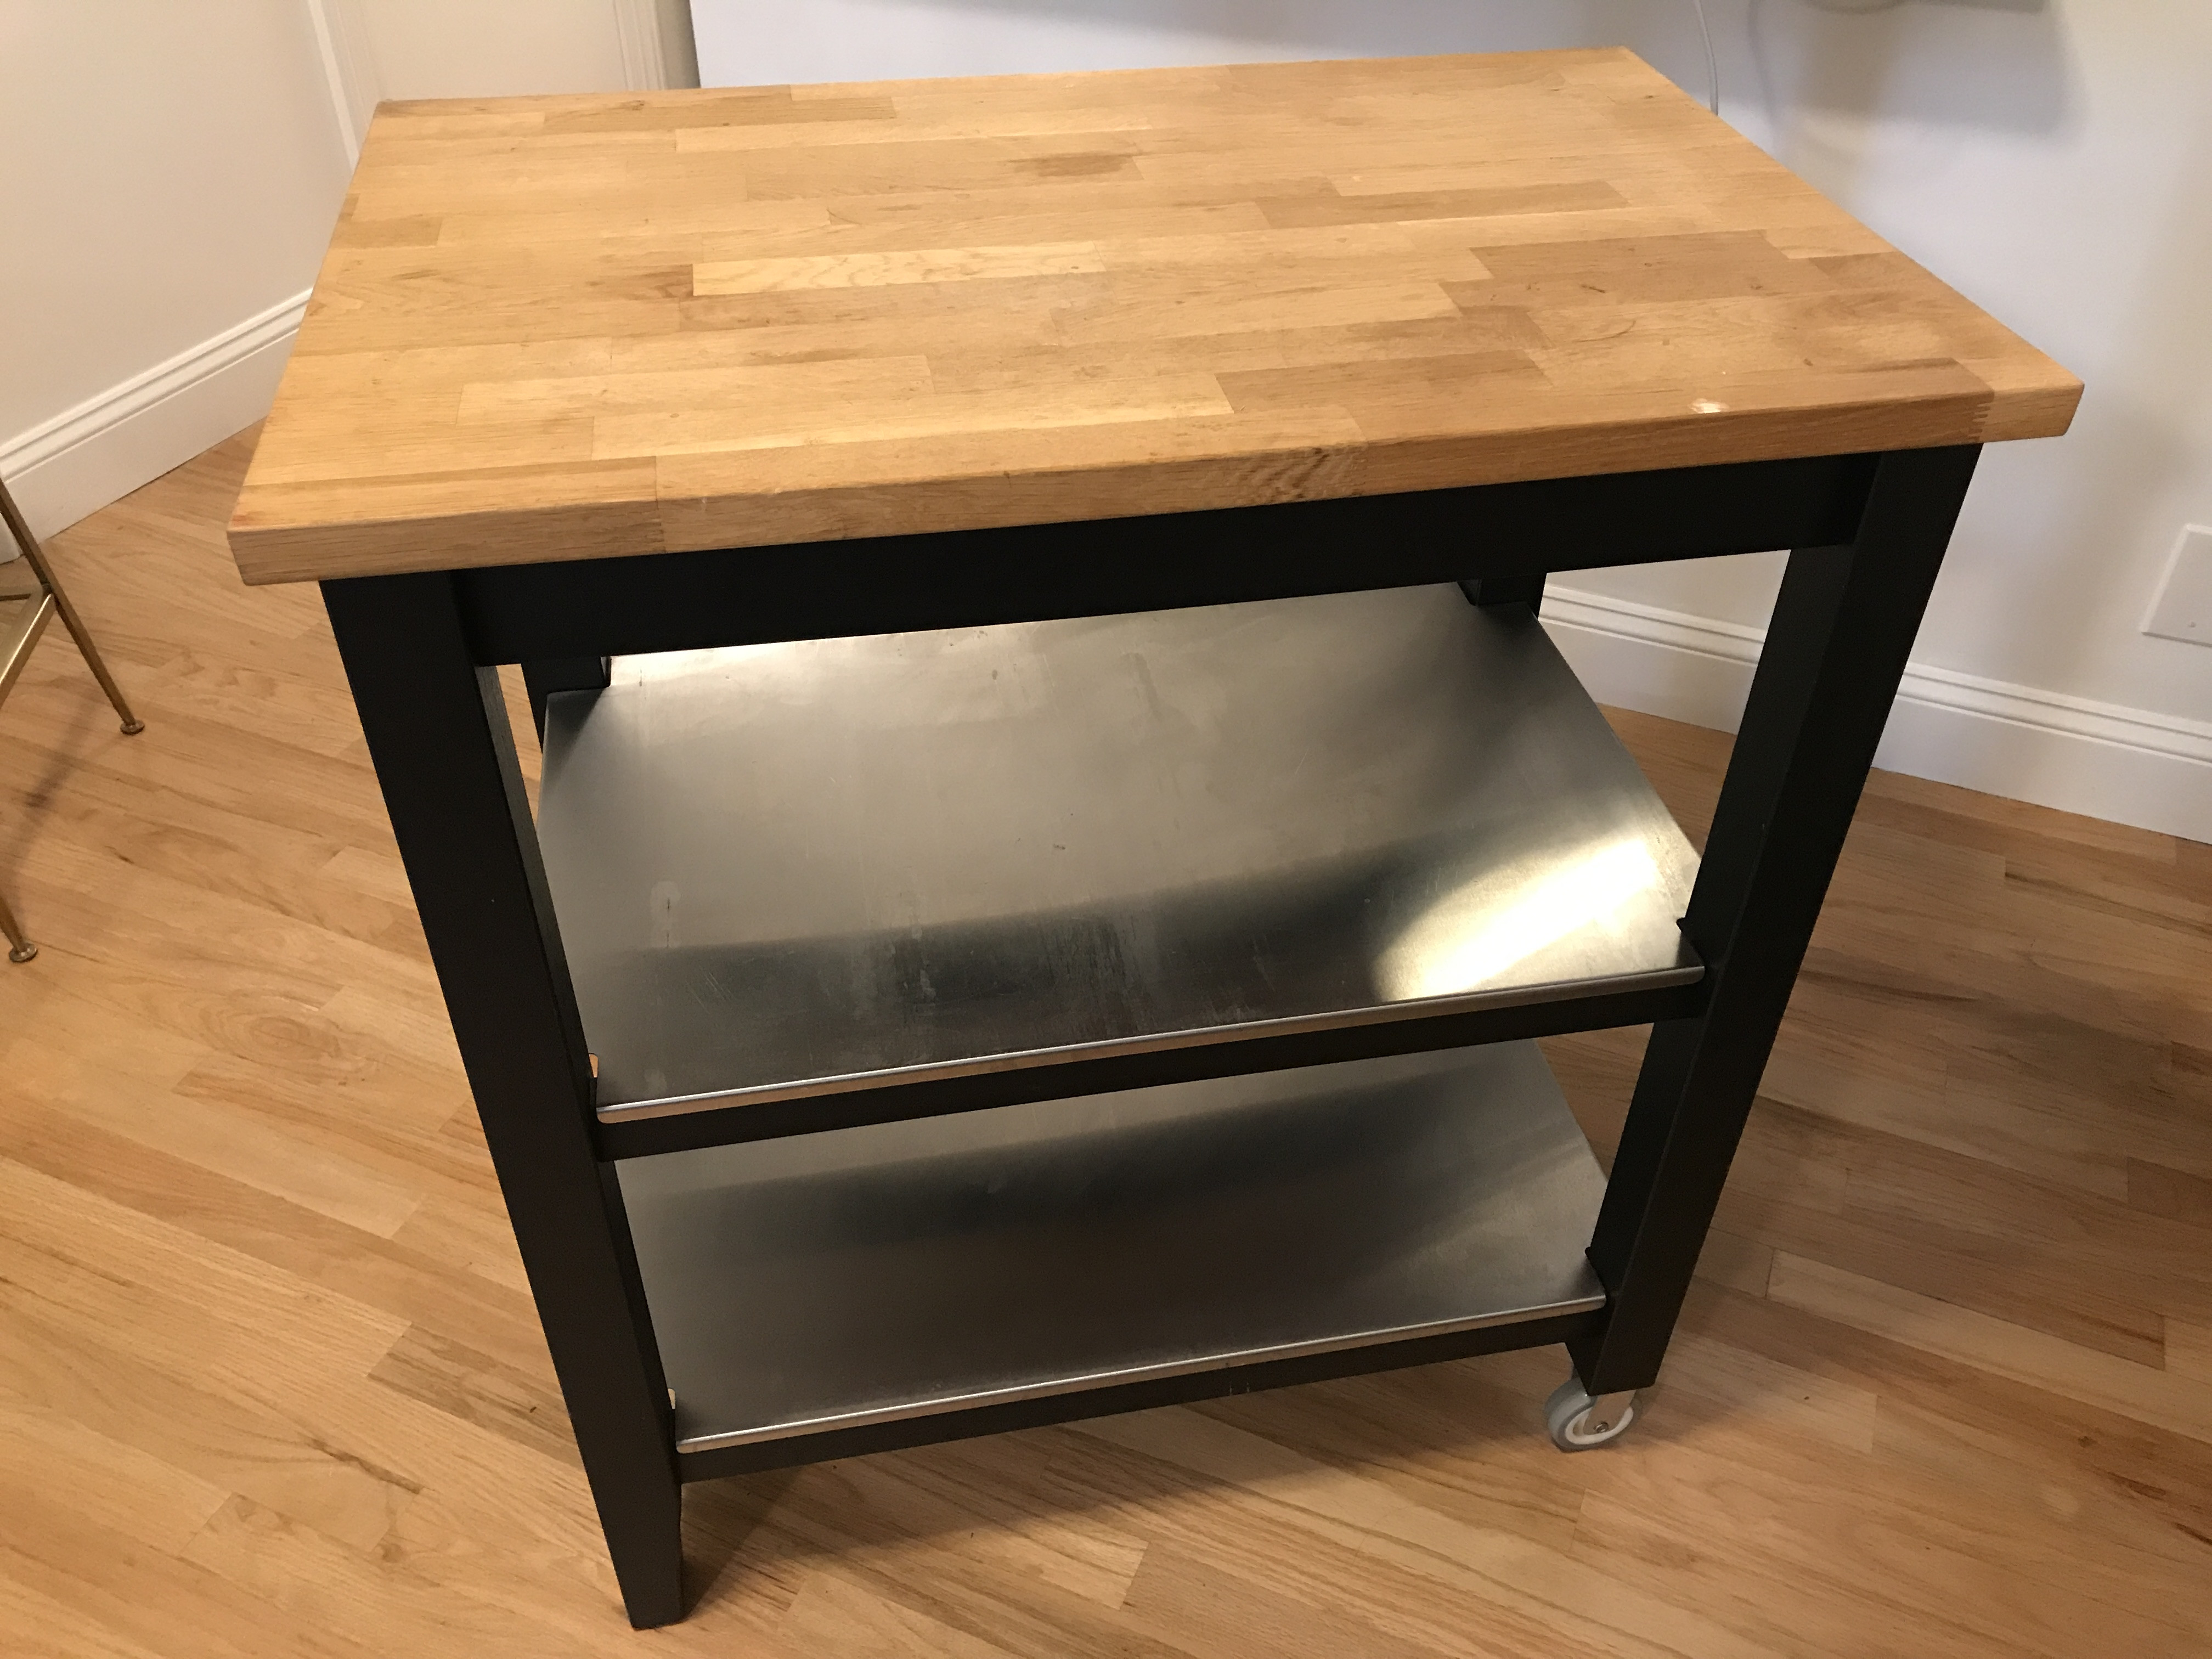 Ikea Butcher Block Kitchen Island Cart - AptDeco